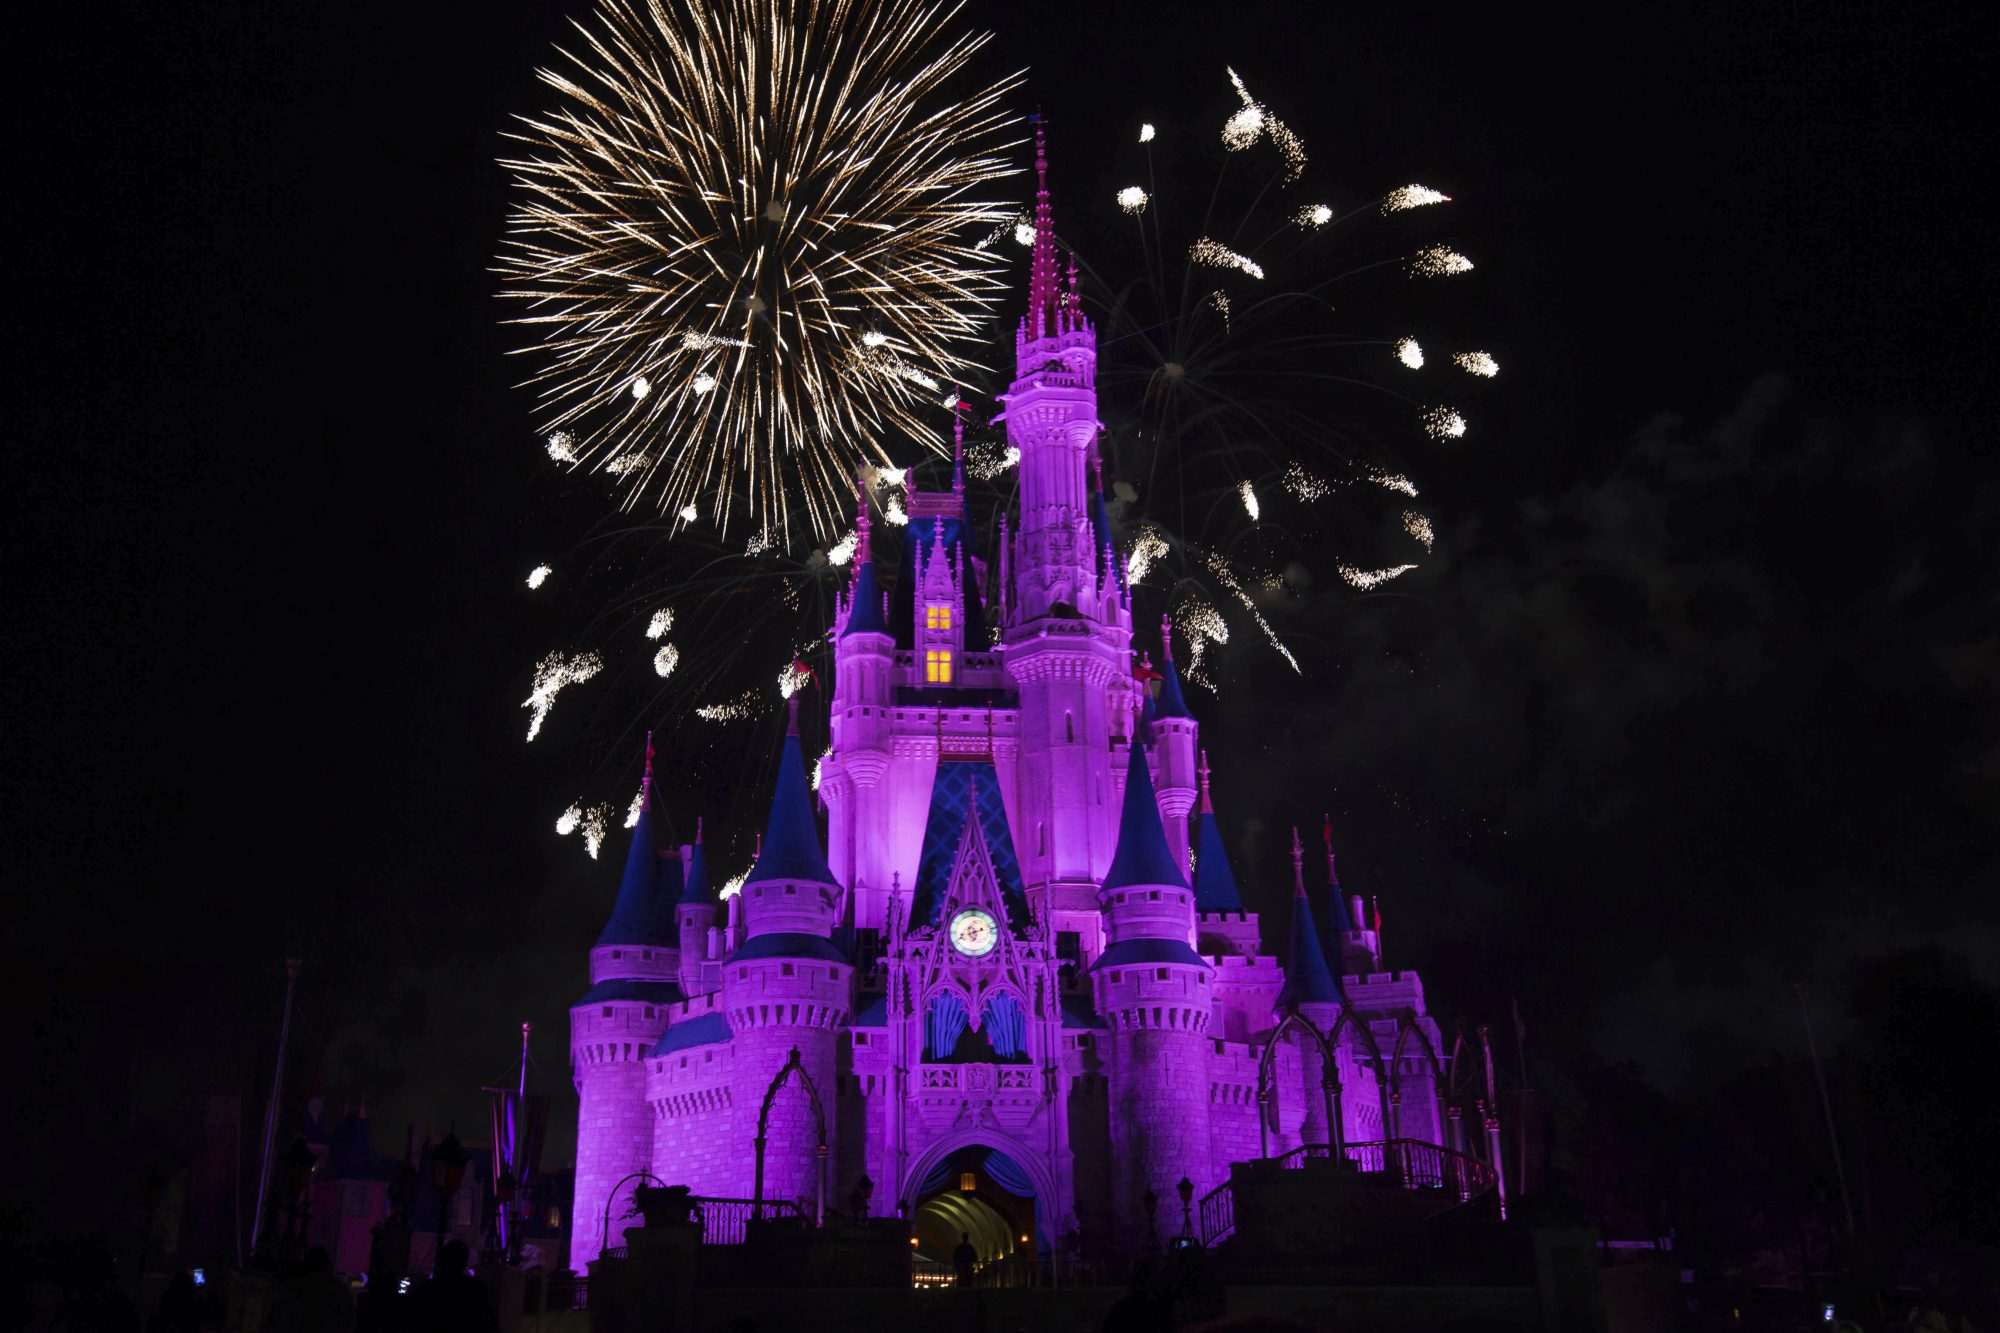 Fireworks Over Cinderella's Castle at Disney's Magic Kingdom